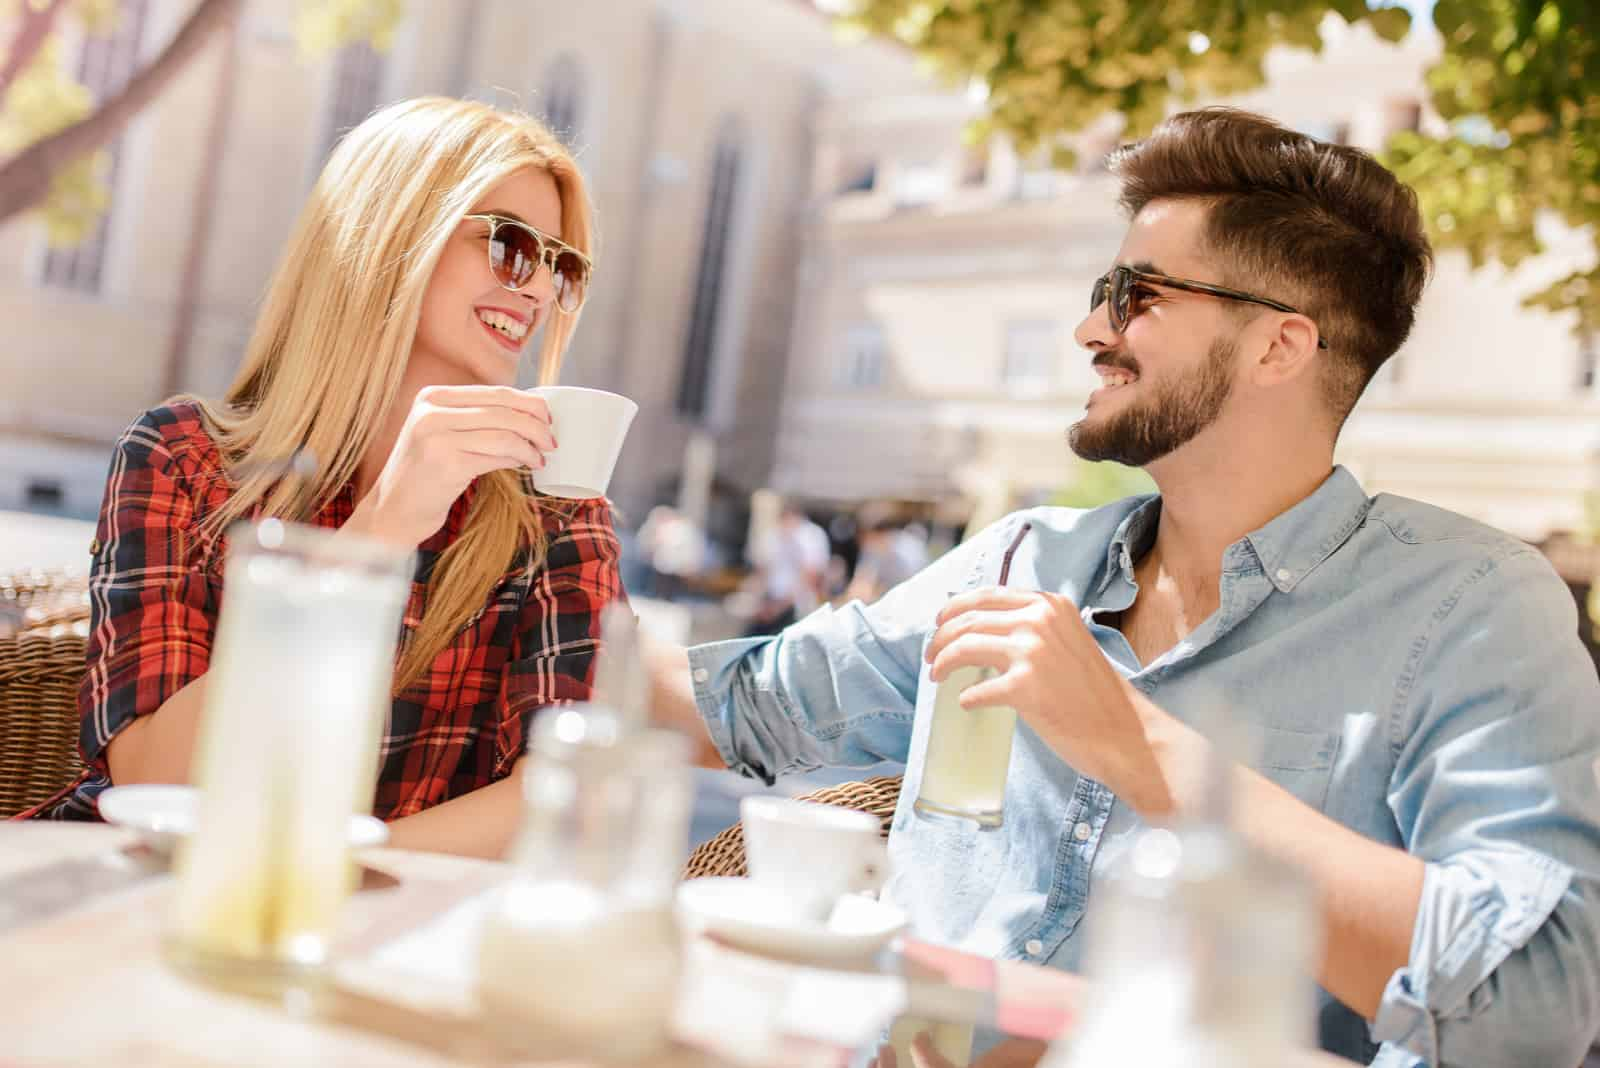 a man and a woman drinking coffee outdoors and looking at each other